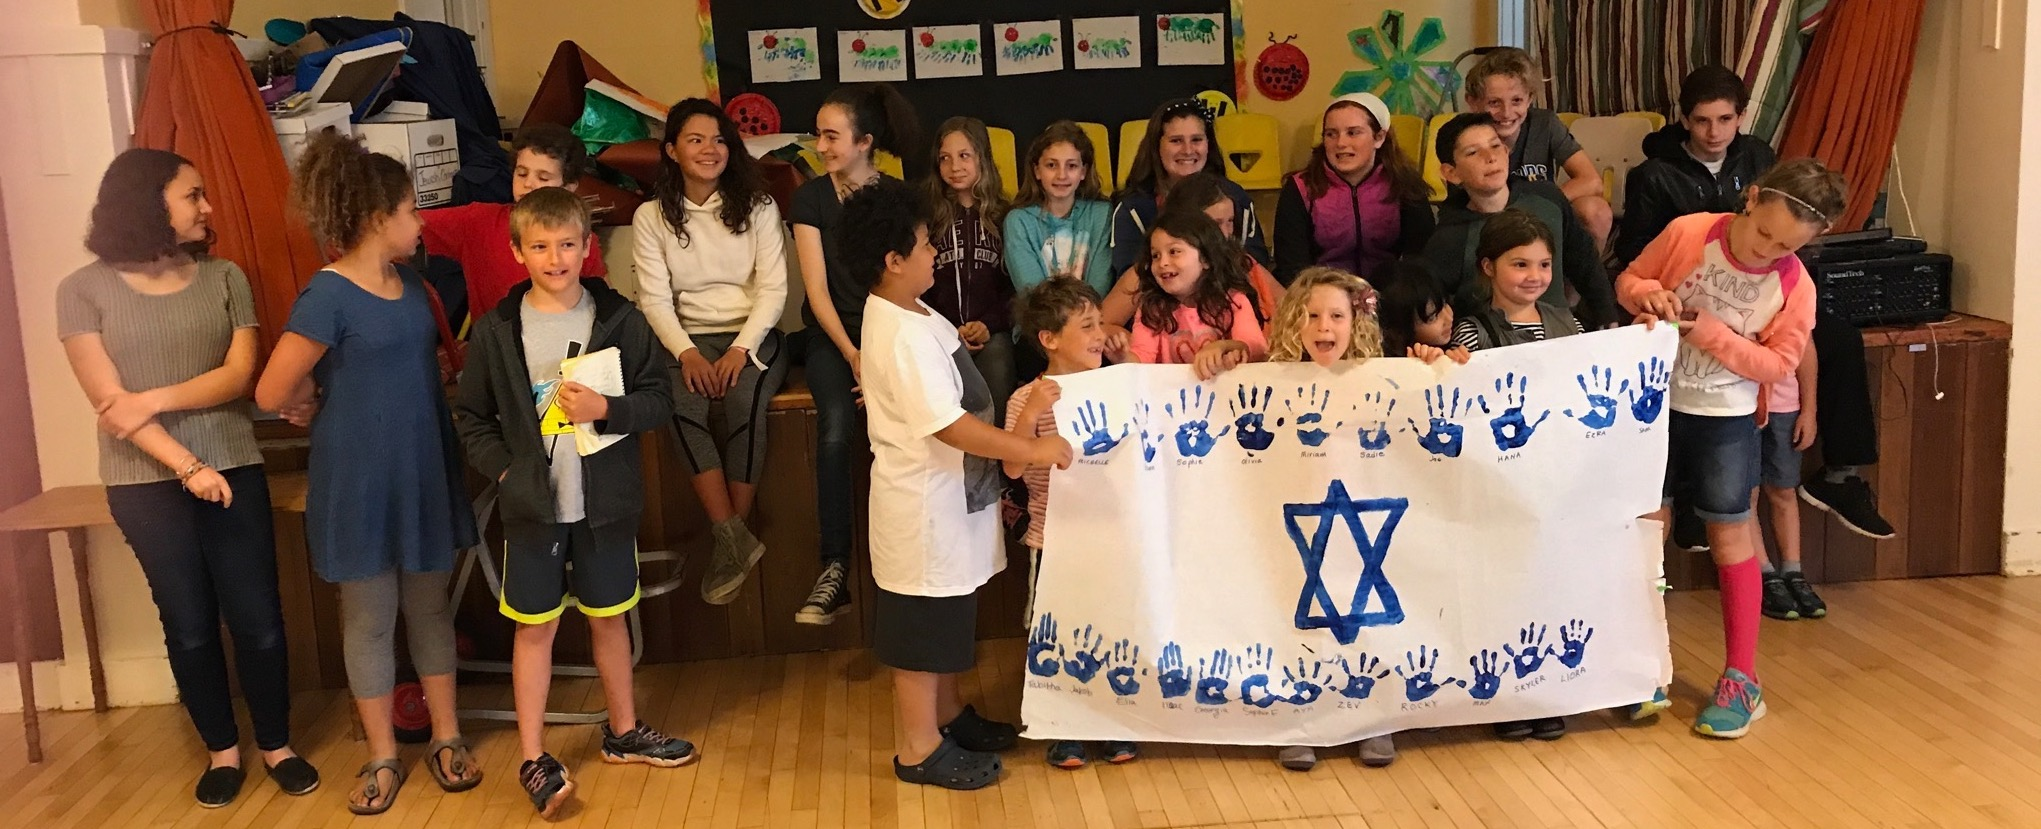 "<a href=""/learning""